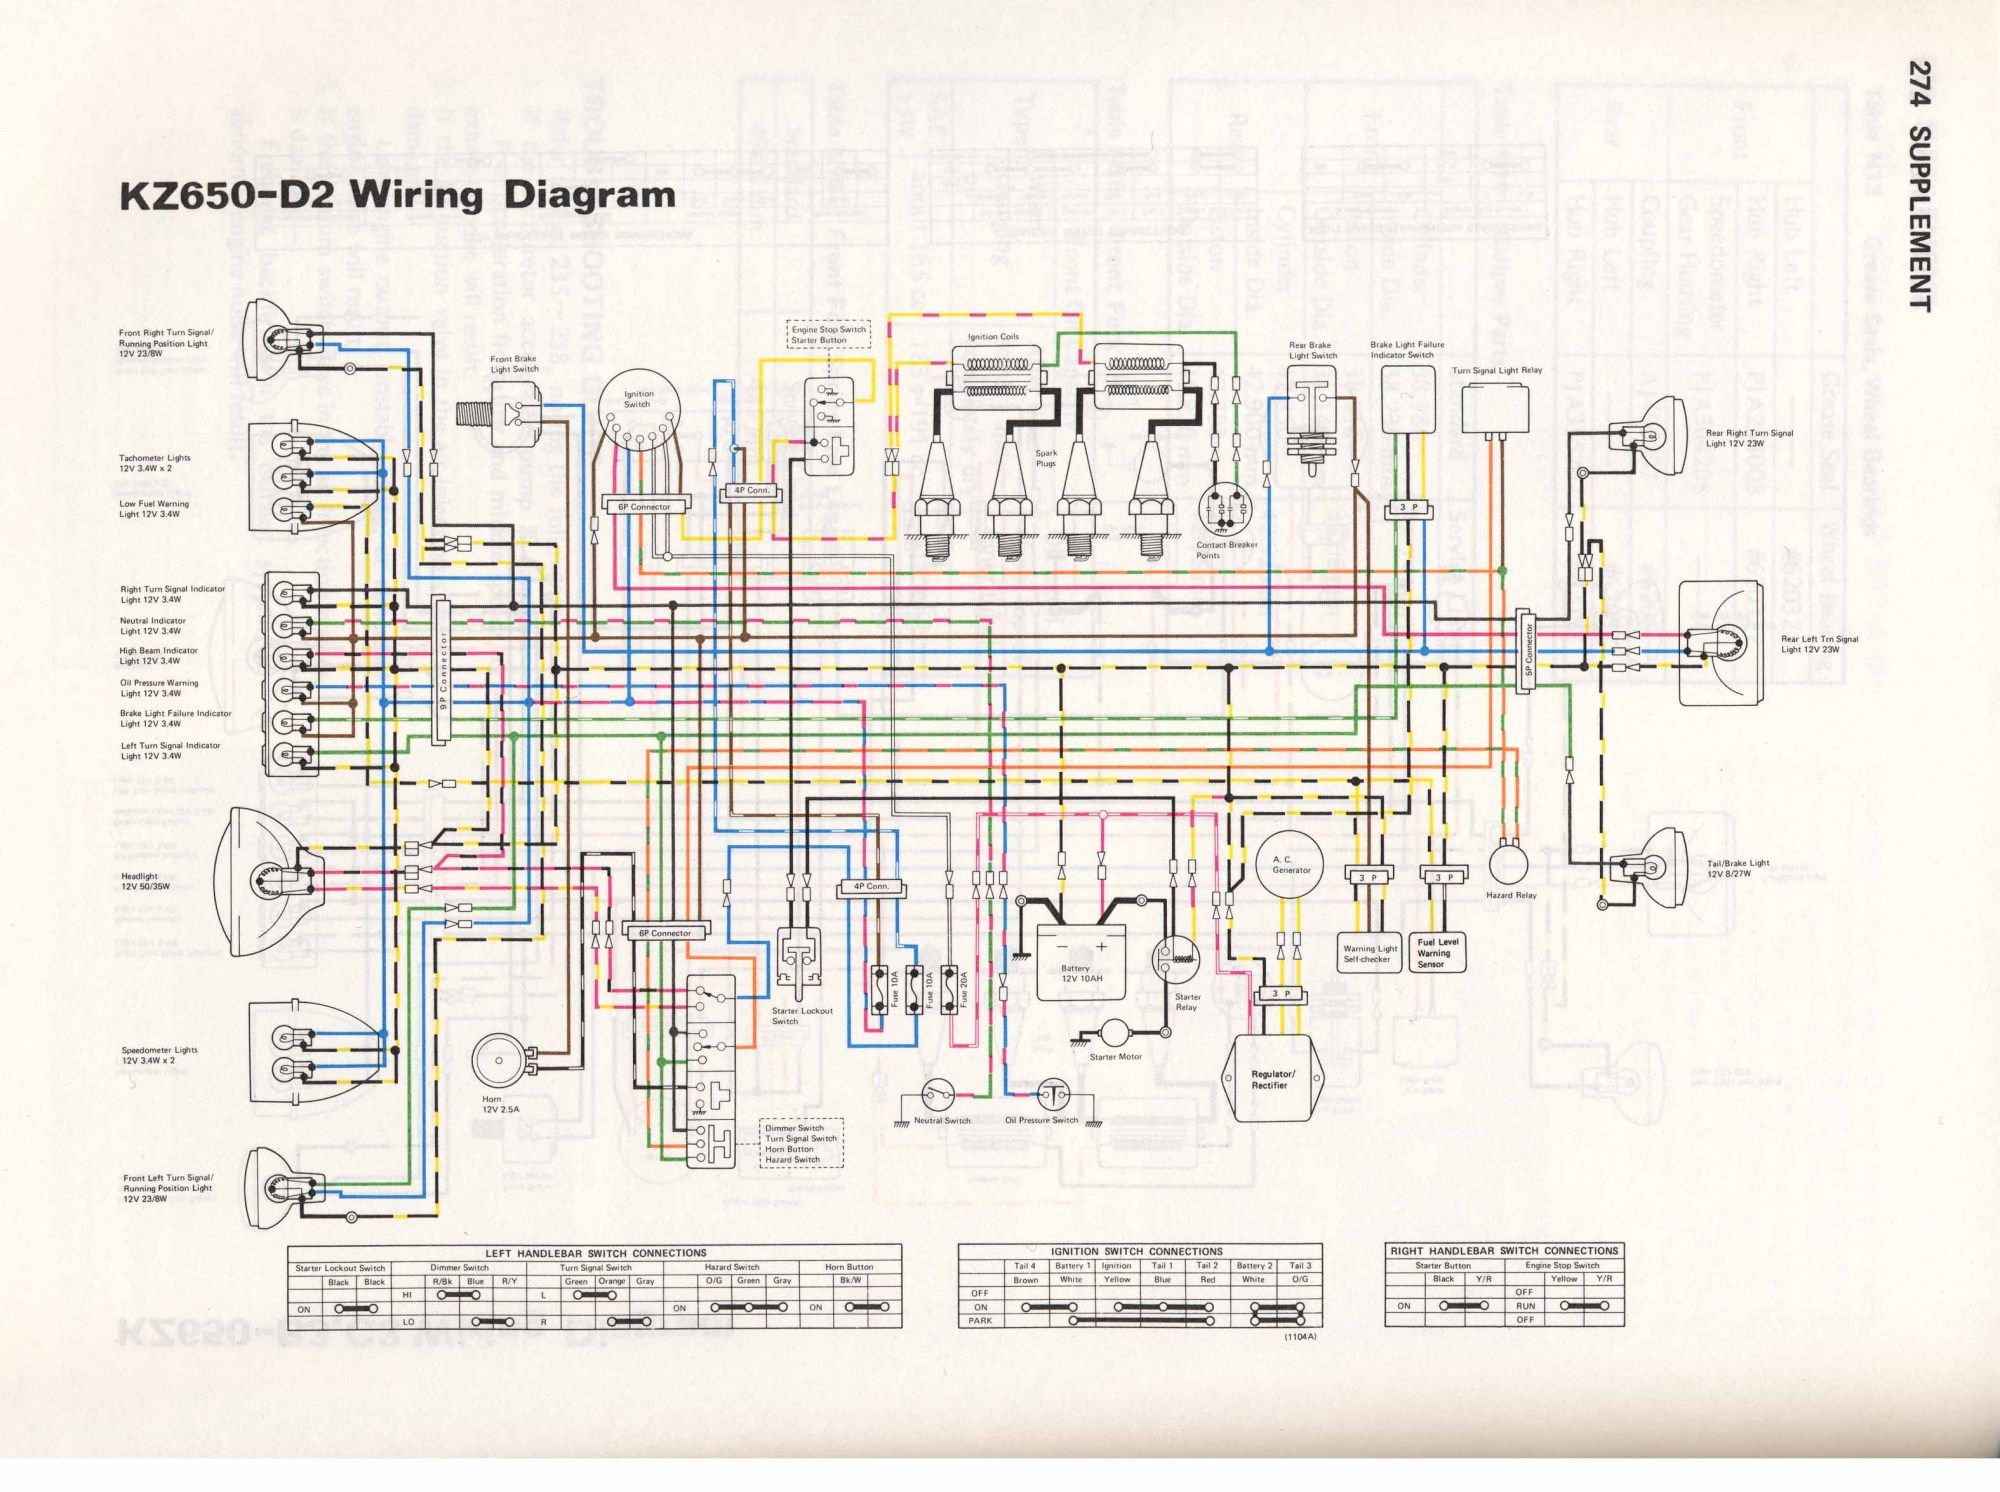 hight resolution of kz650 d2 kz650 info wiring diagrams kz650 d2 kawasaki w 650